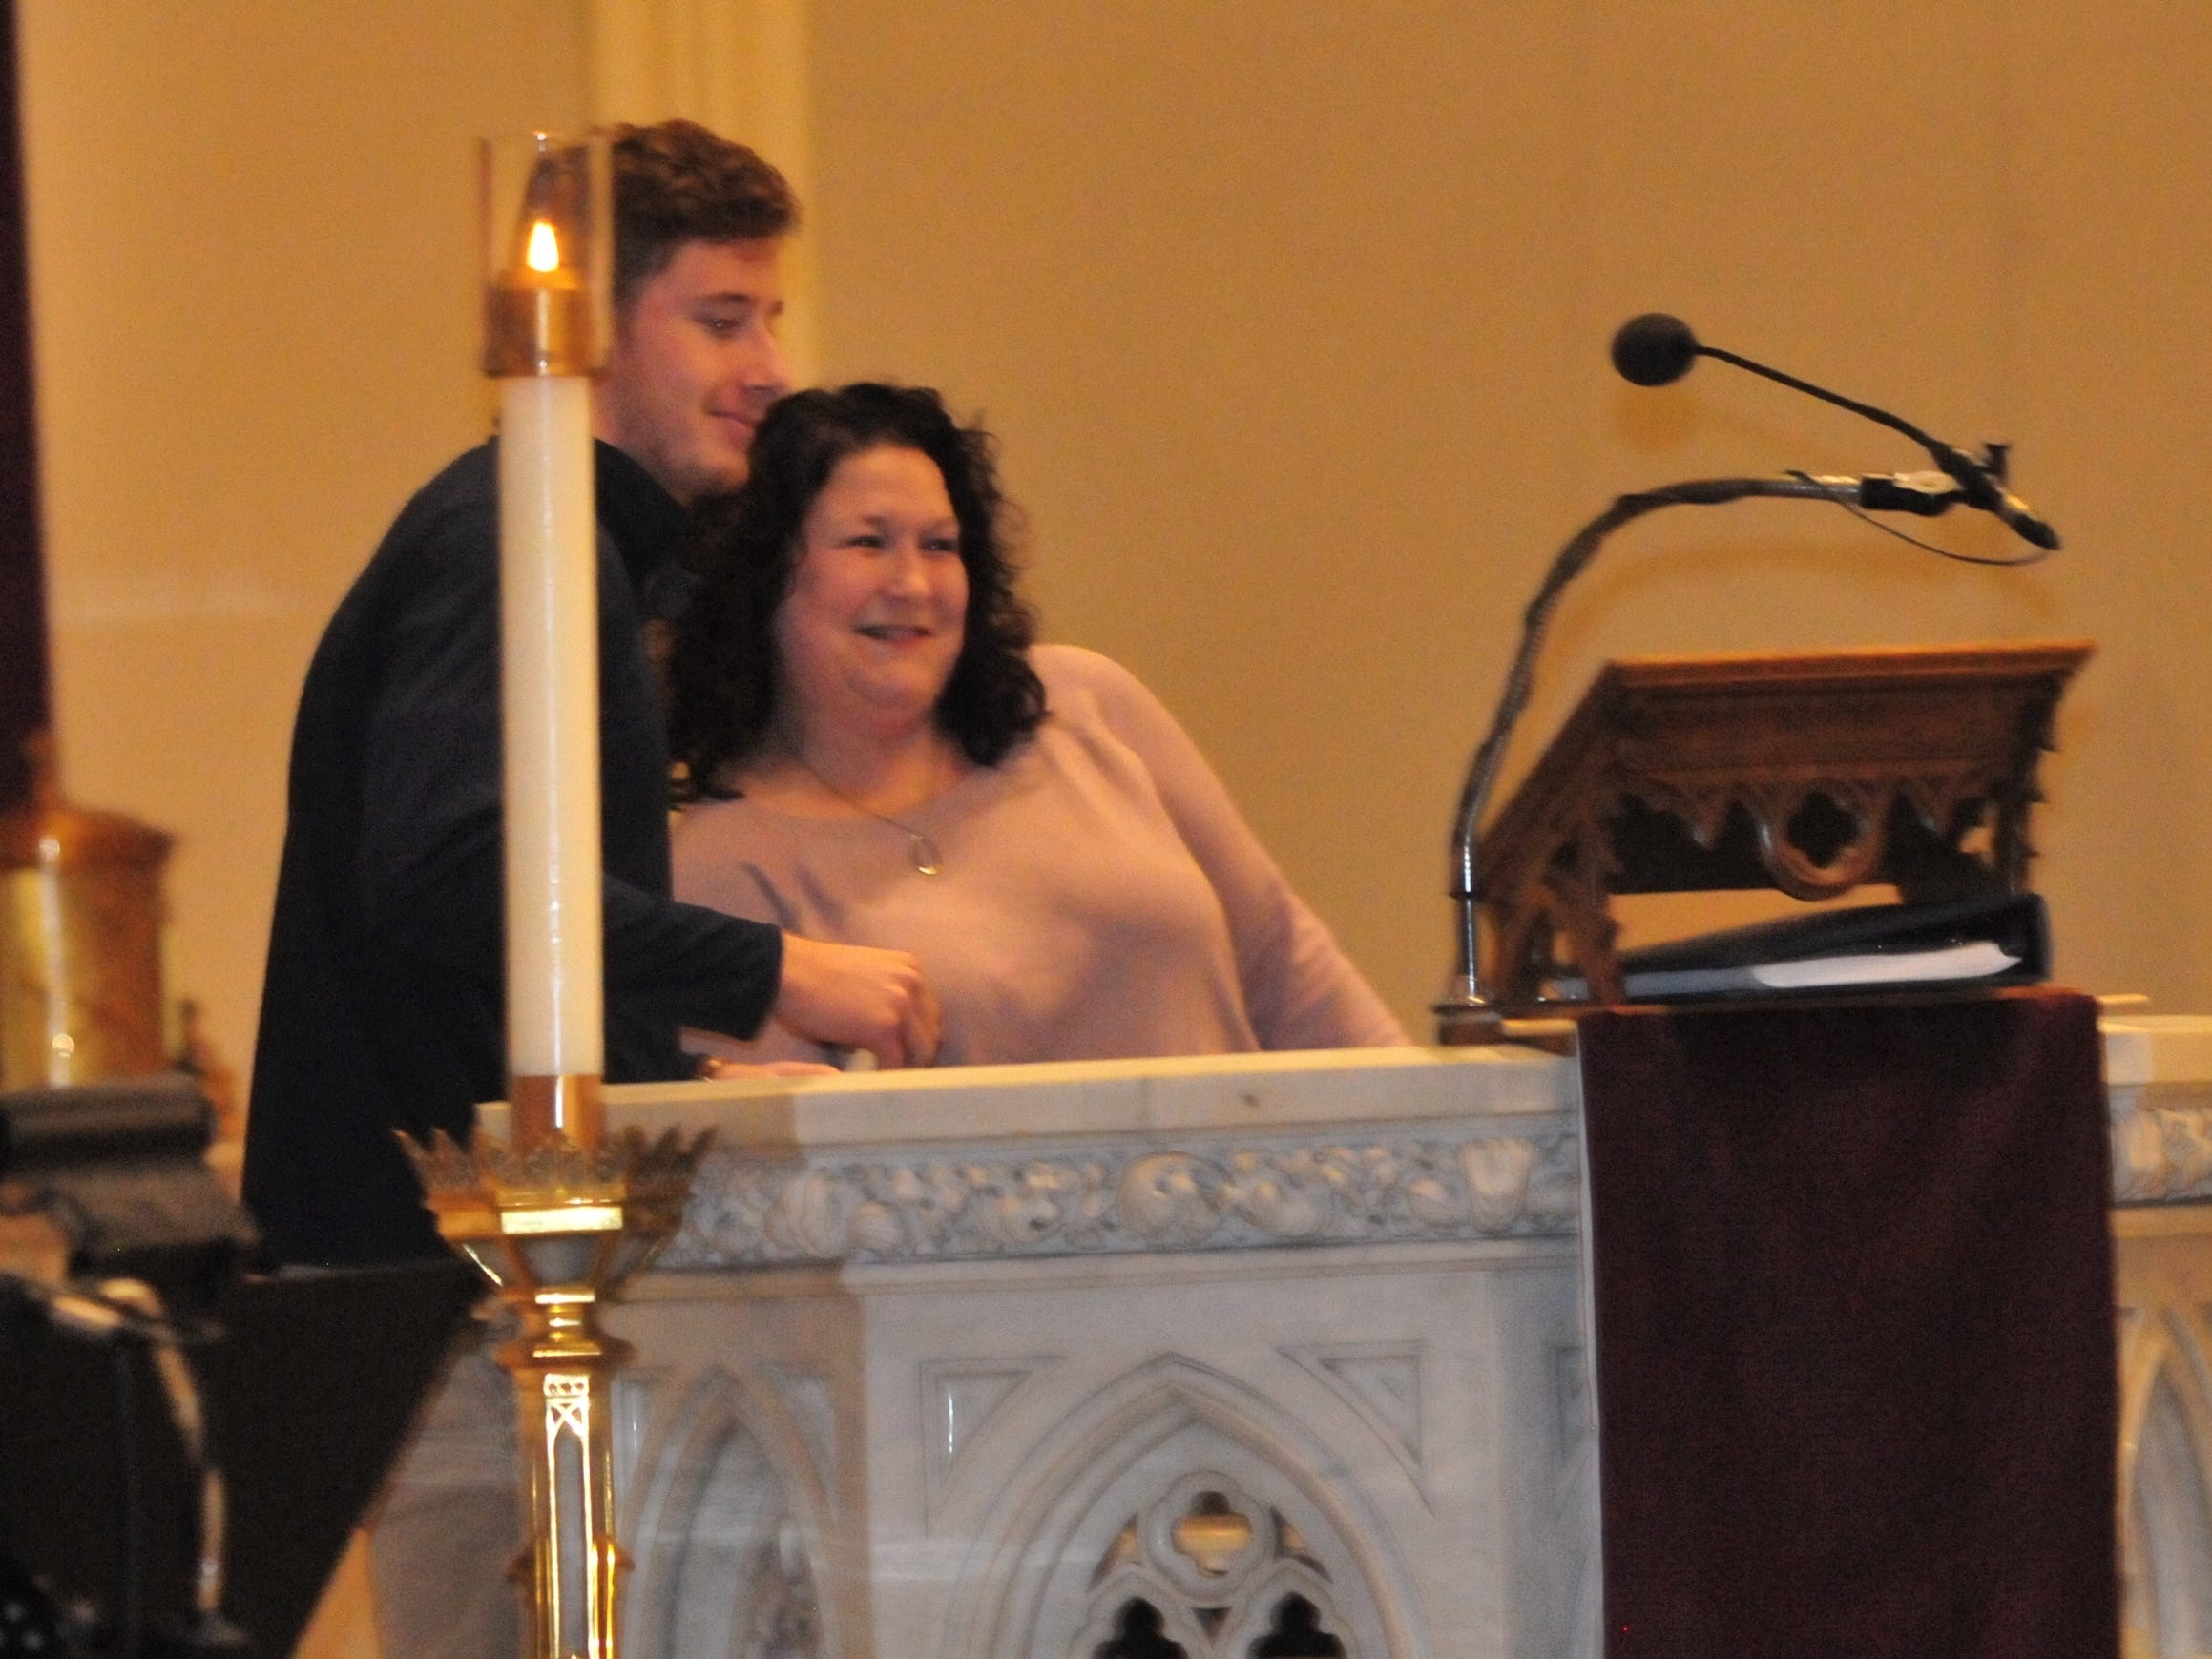 Seton Catholic senior Joseph Lahmann, left, hugs Wayne County Foundation Program Officer Lisa Bates after finding out he won the Lilly Endowment Community Scholarship after morning mass at St. Andrew's Catholic Church in Richmond Tuesday, Dec. 11, 2018.